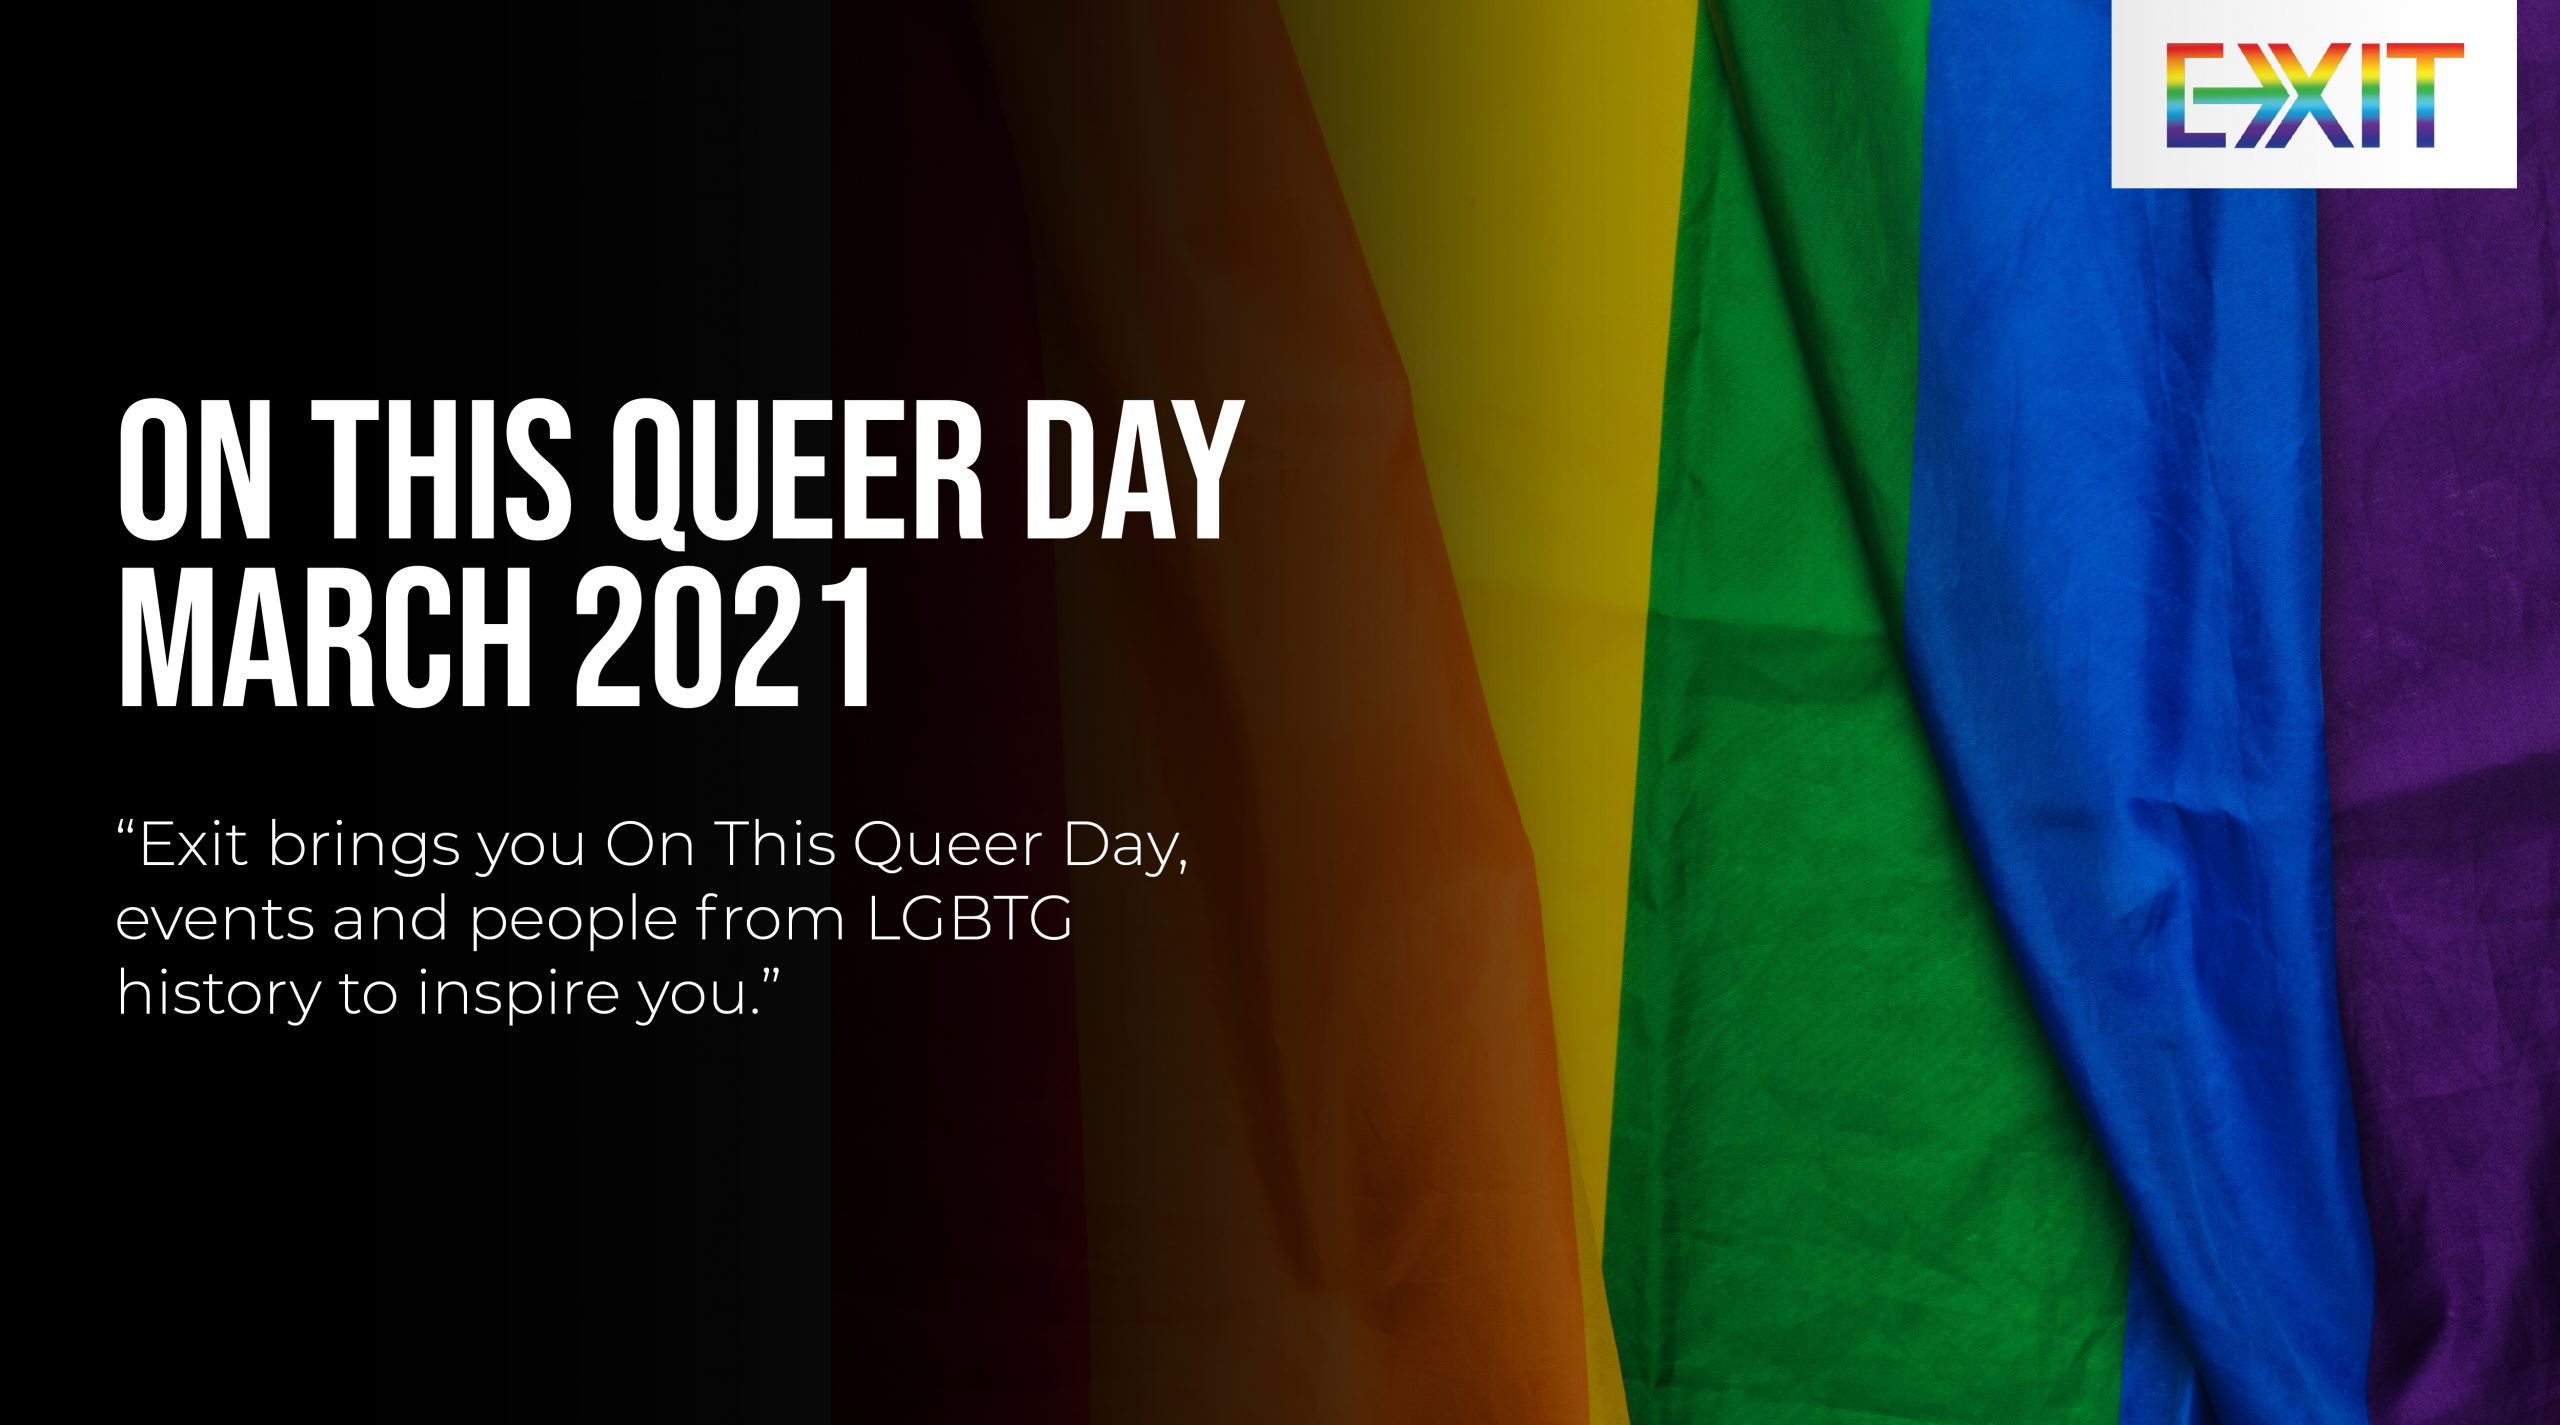 ON THIS QUEER DAY – MARCH 2021